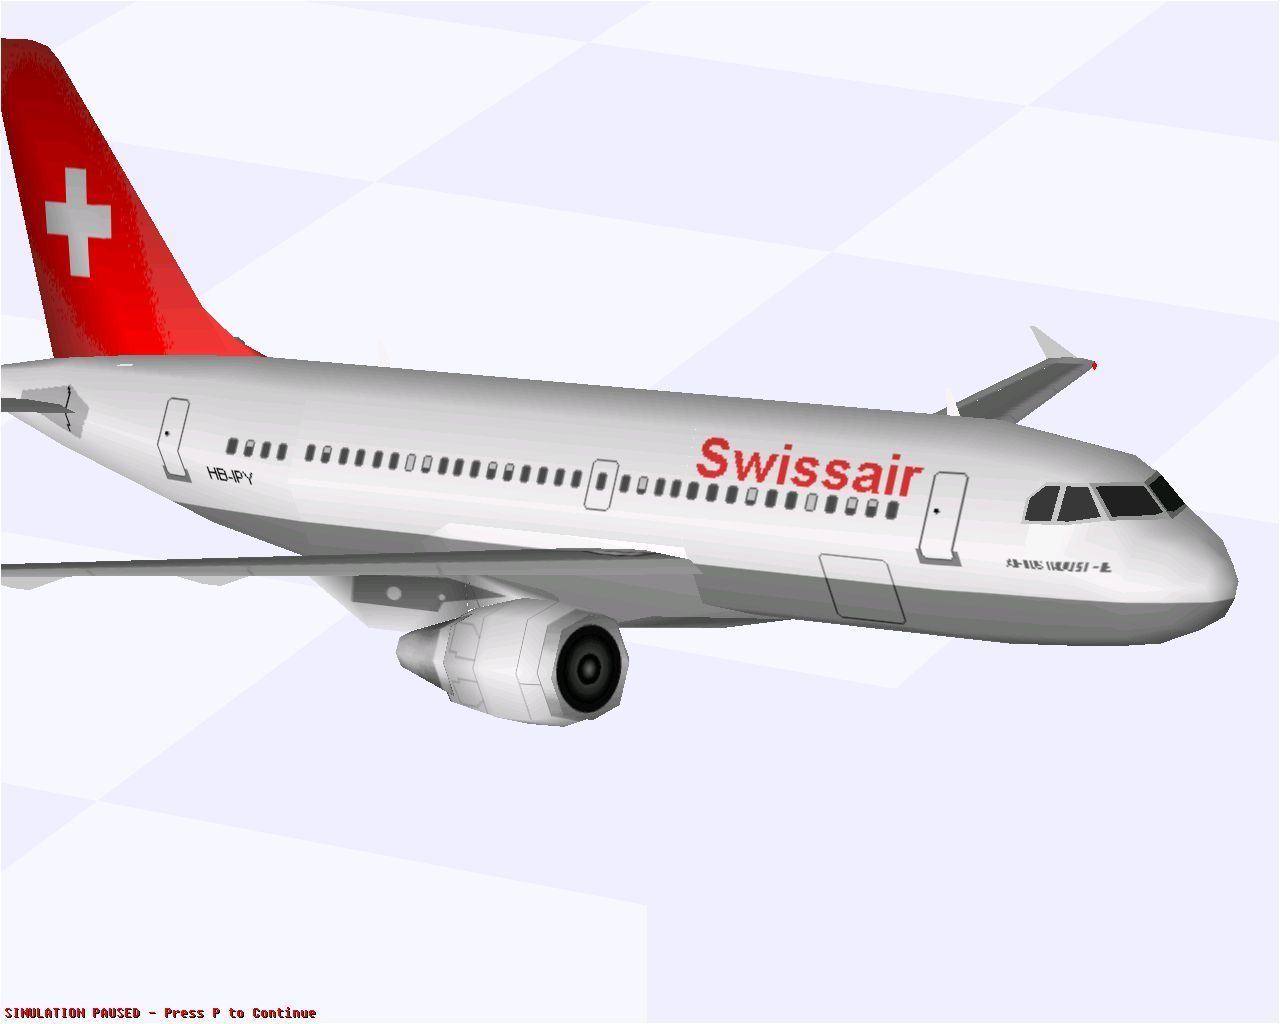 Airbus 2000: Special Edition Windows An Airbus A319-111 flying in Swissair livery in Microsoft Flight Simulator 98